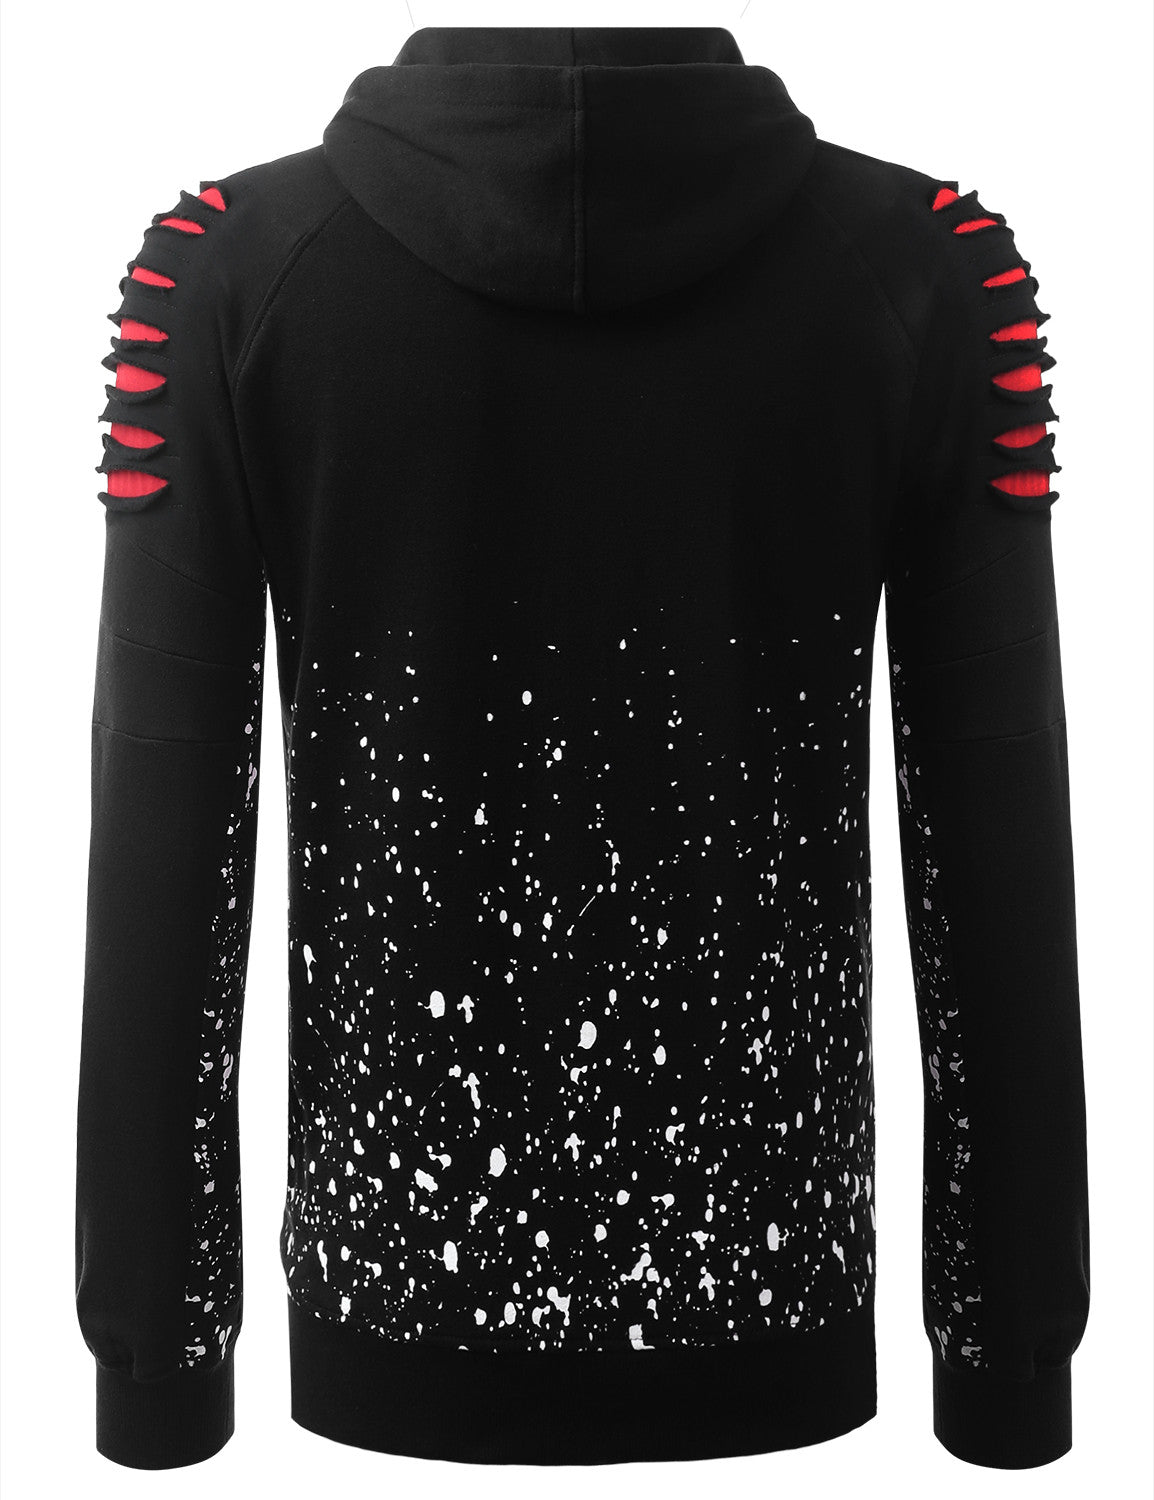 BLACKRED Bull Splatter Long-Sleeve Hoodie Jackets - URBANCREWS